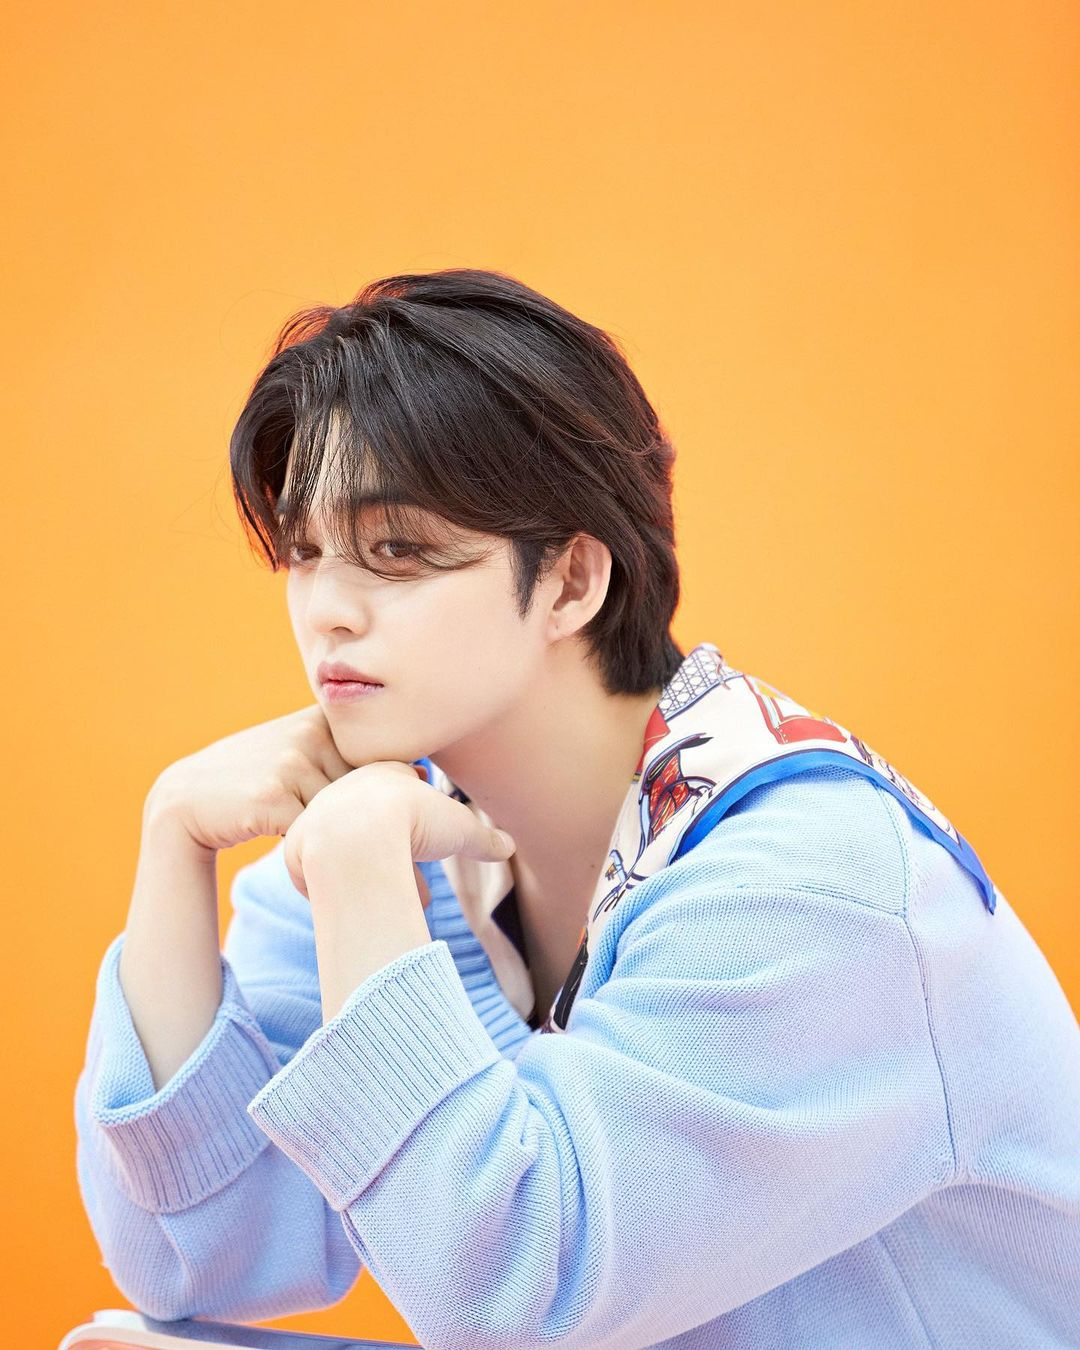 Seventeen S.Coups, sniping women's hearts with boyfriend-looking photos